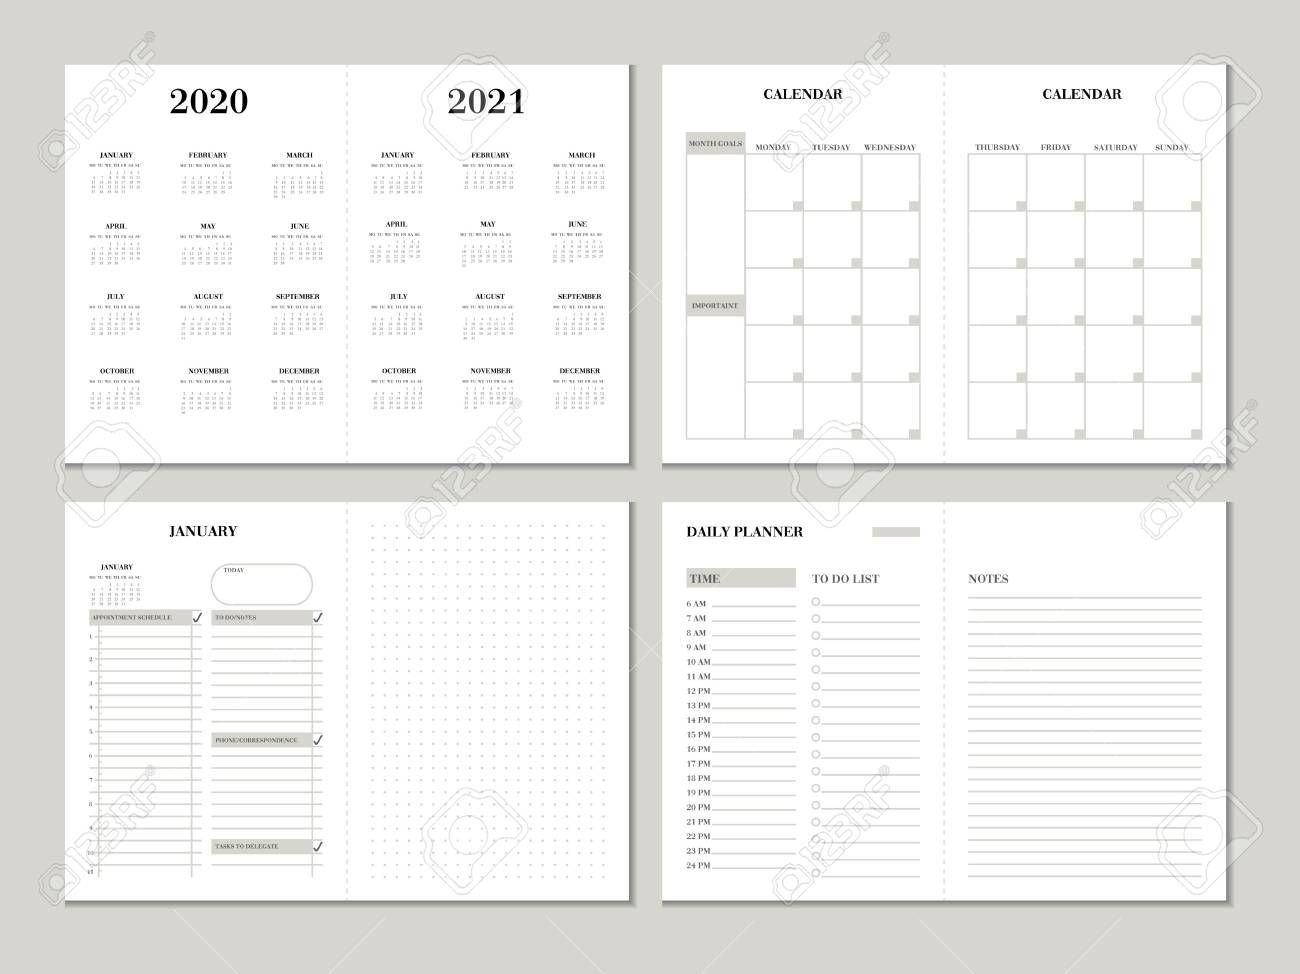 planner design template for 2020 2021 year weekly and monthly